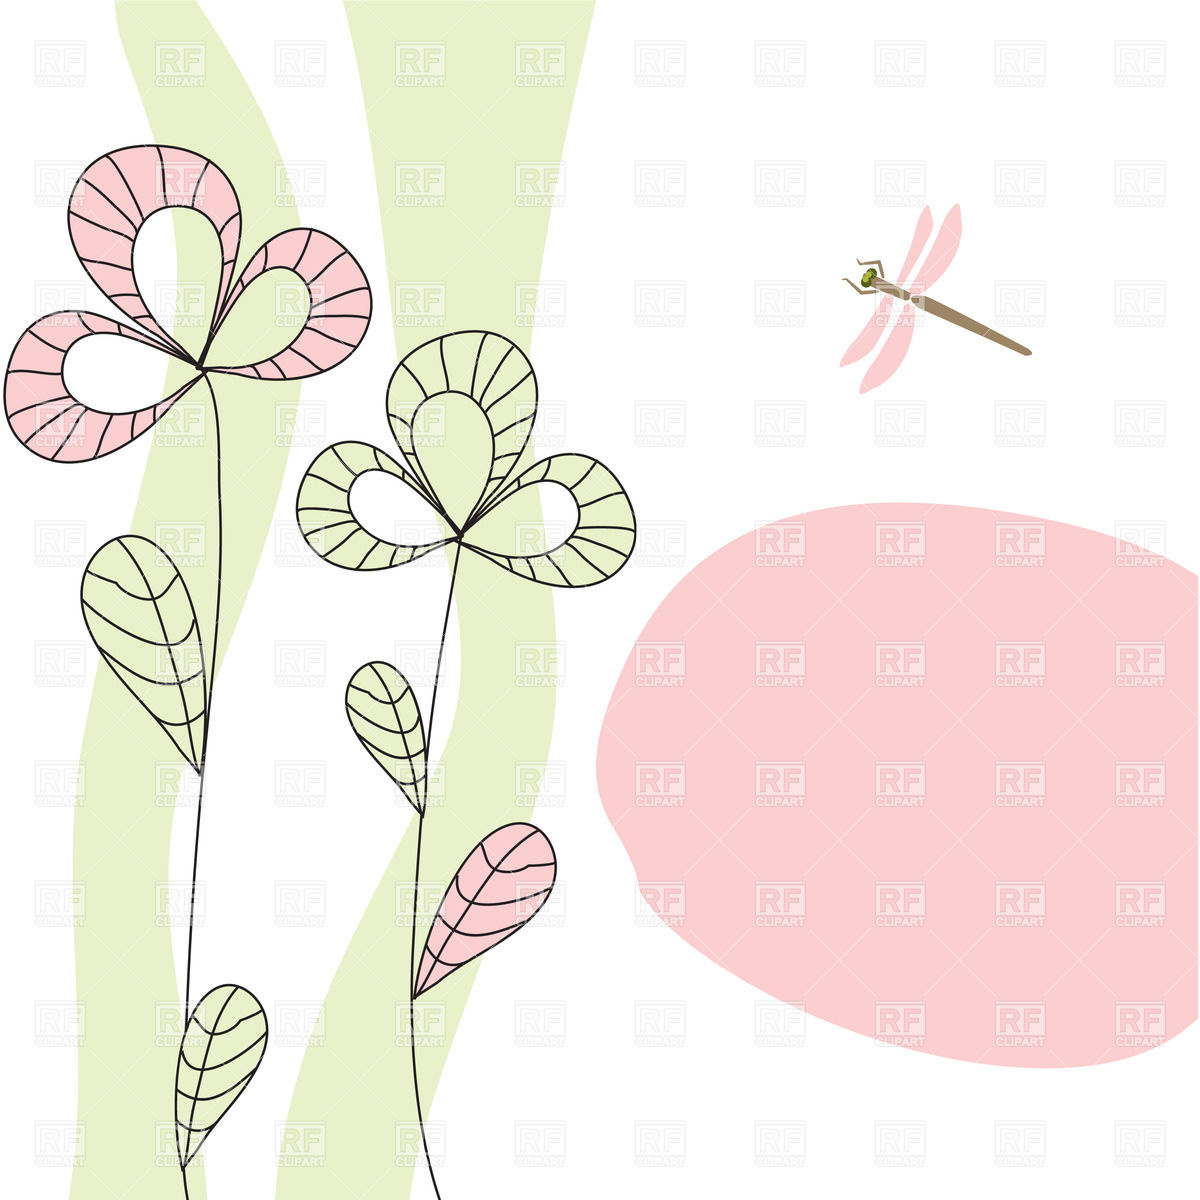 Greeting card with hand drawn symbolic flowers Vector Image #21736.